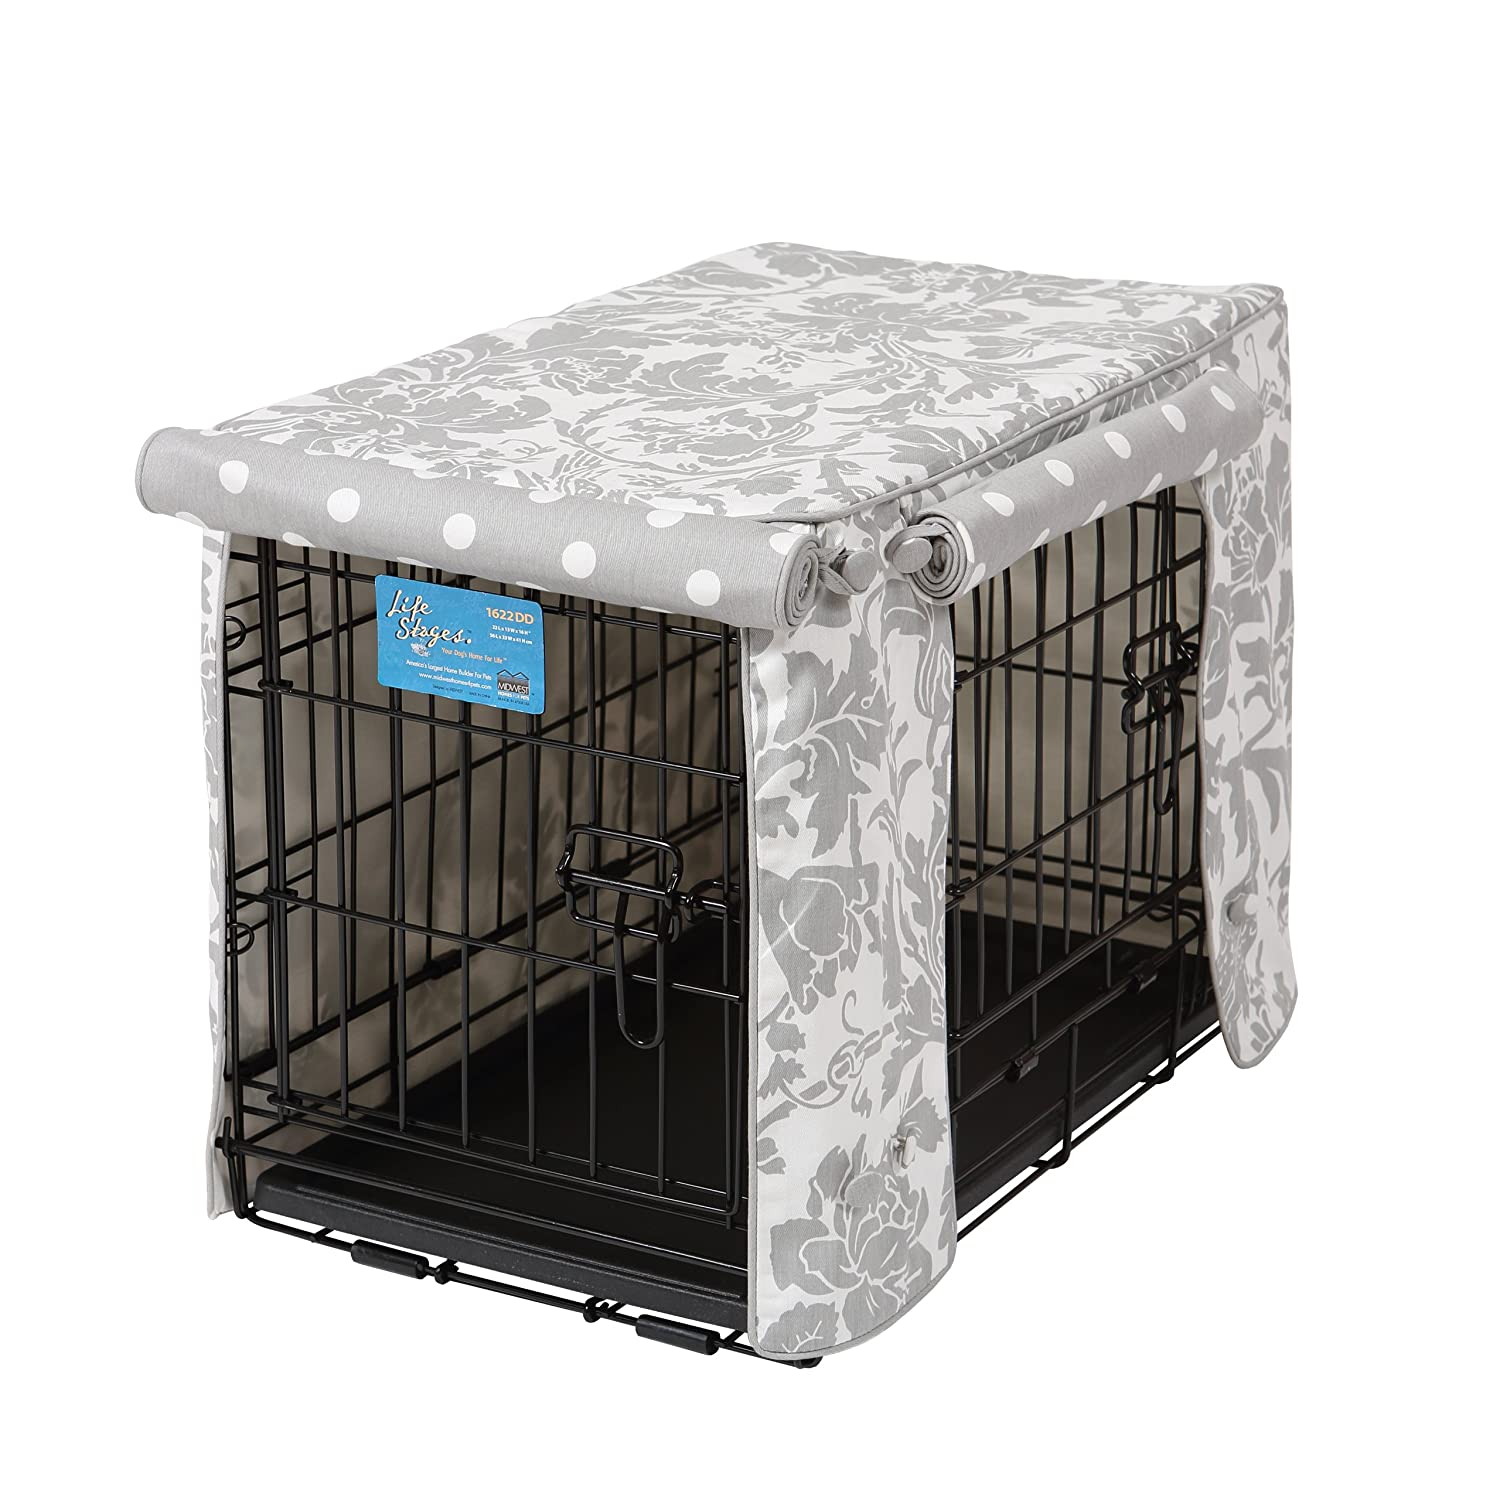 Crate Covers and More Double Door 24 Pet Crate Cover BLKPAR24